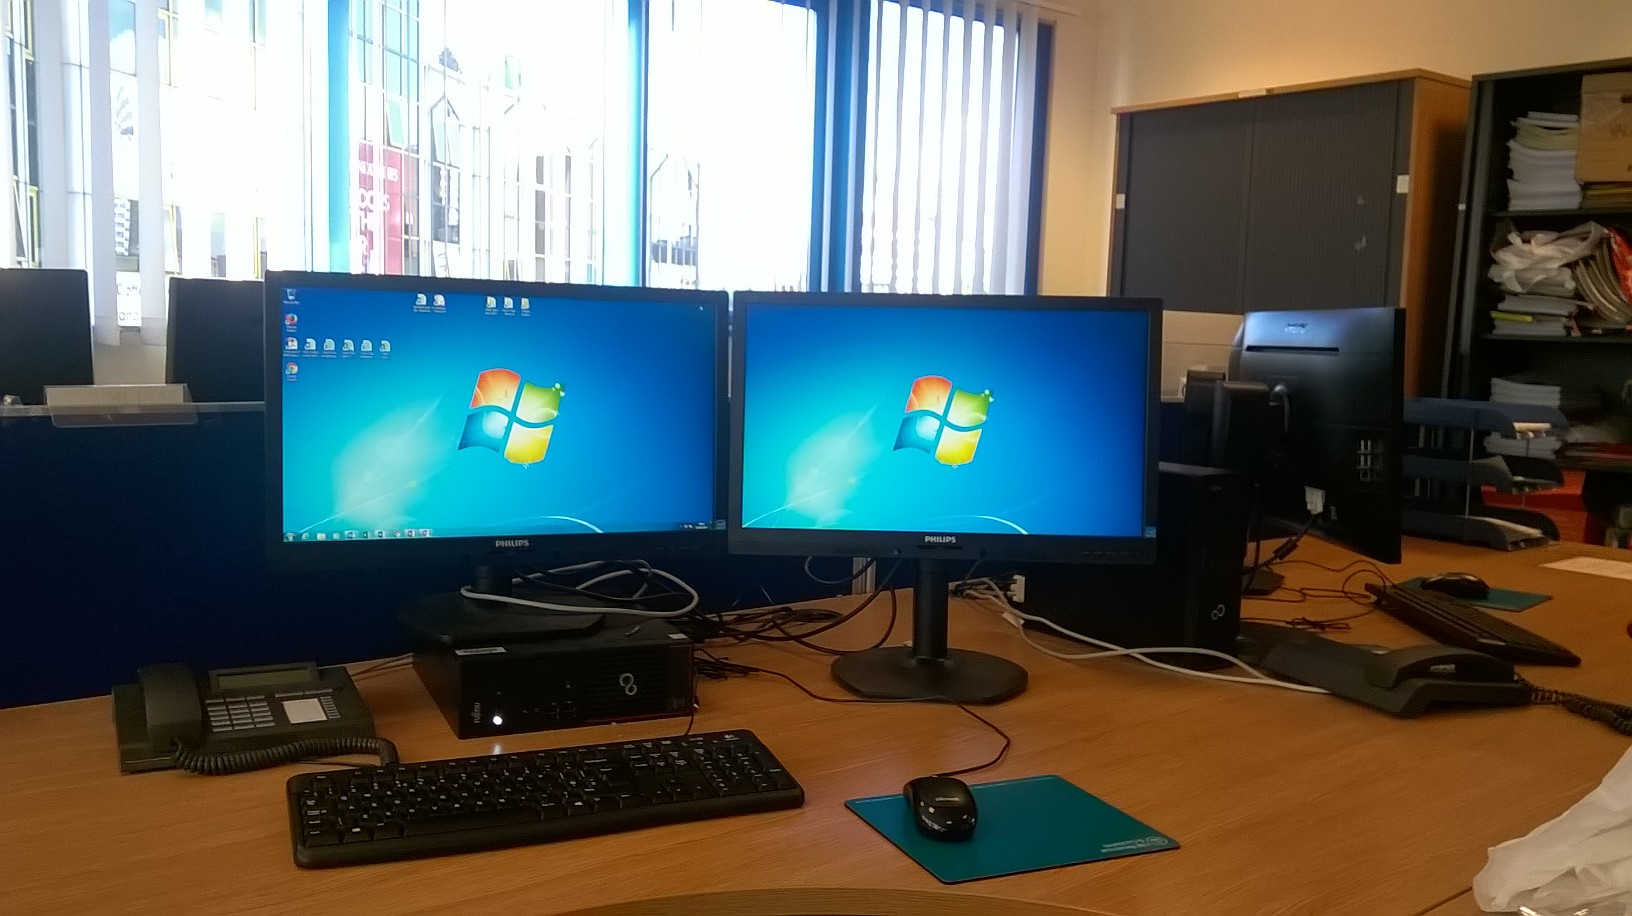 2 screens with a mouse and keyboard